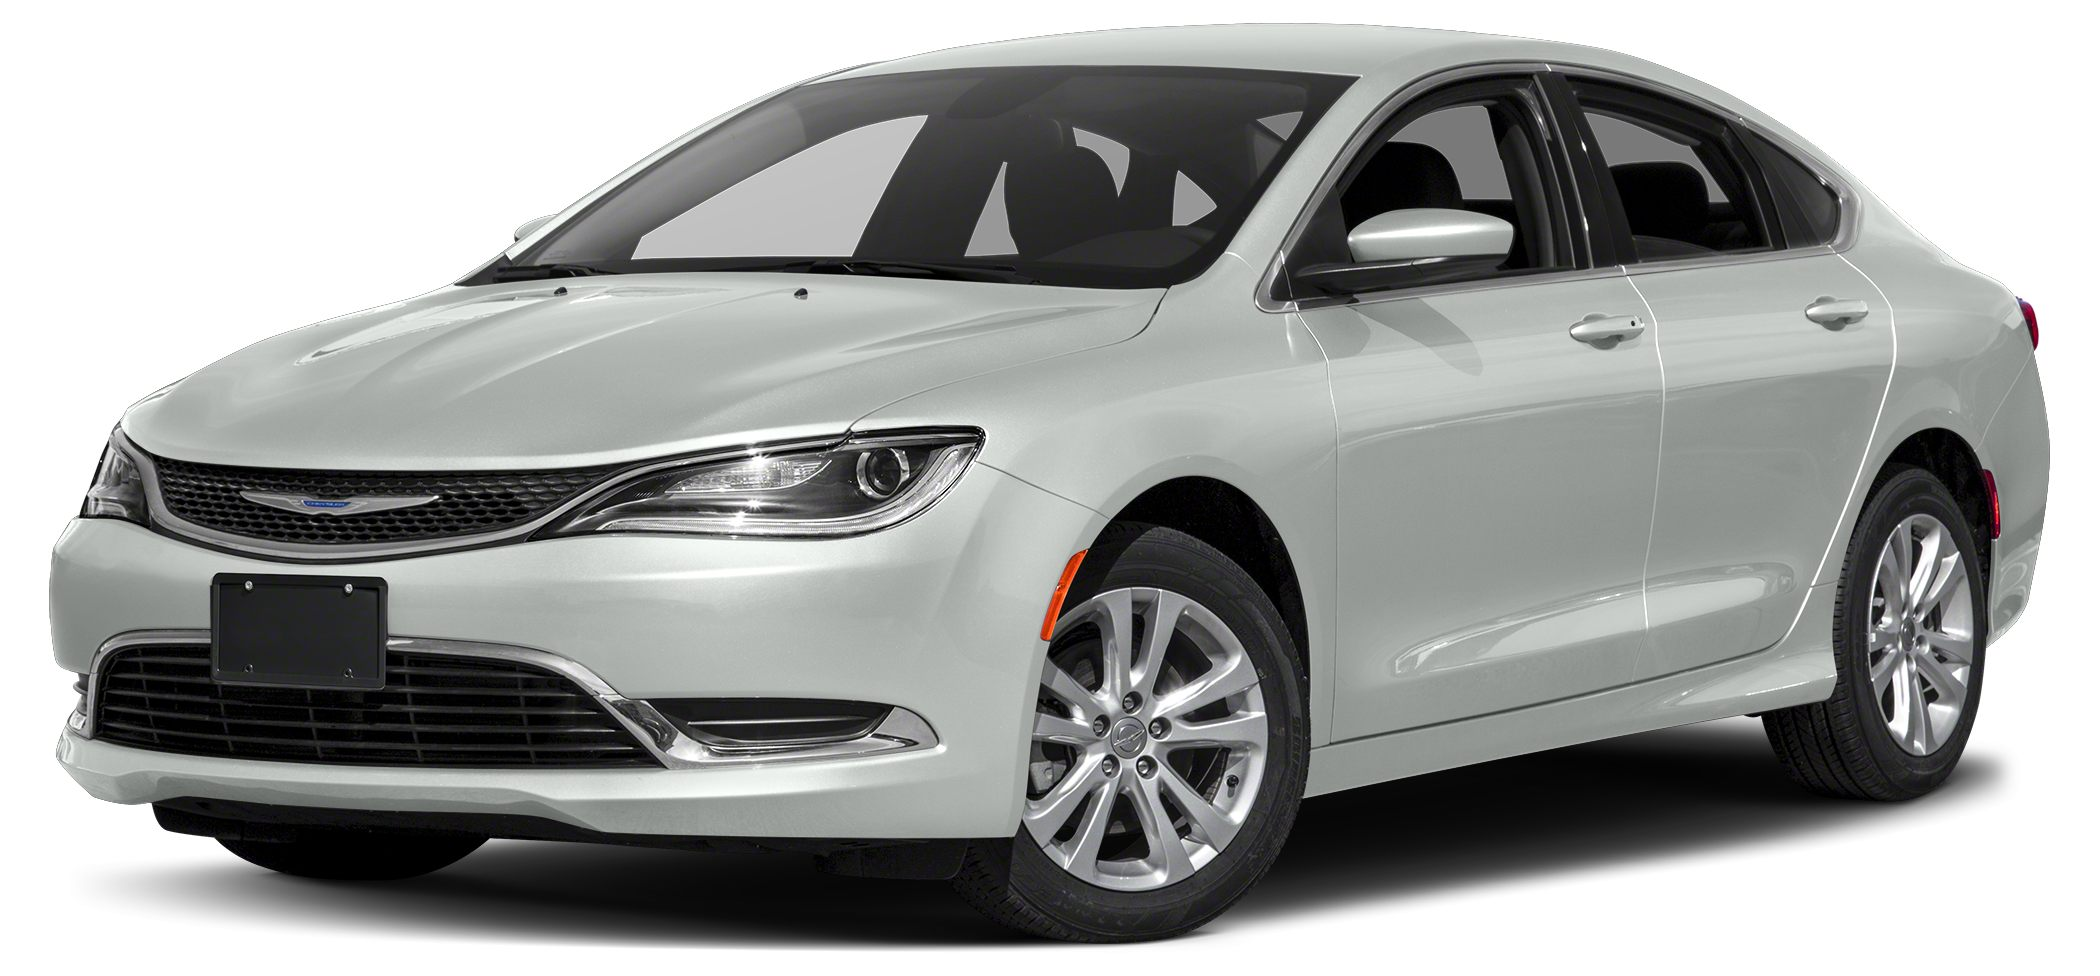 2016 Chrysler 200 Limited Recent Arrival CARFAX ONE OWNER 200 Limited 24L 4-Cylinder SMPI SO